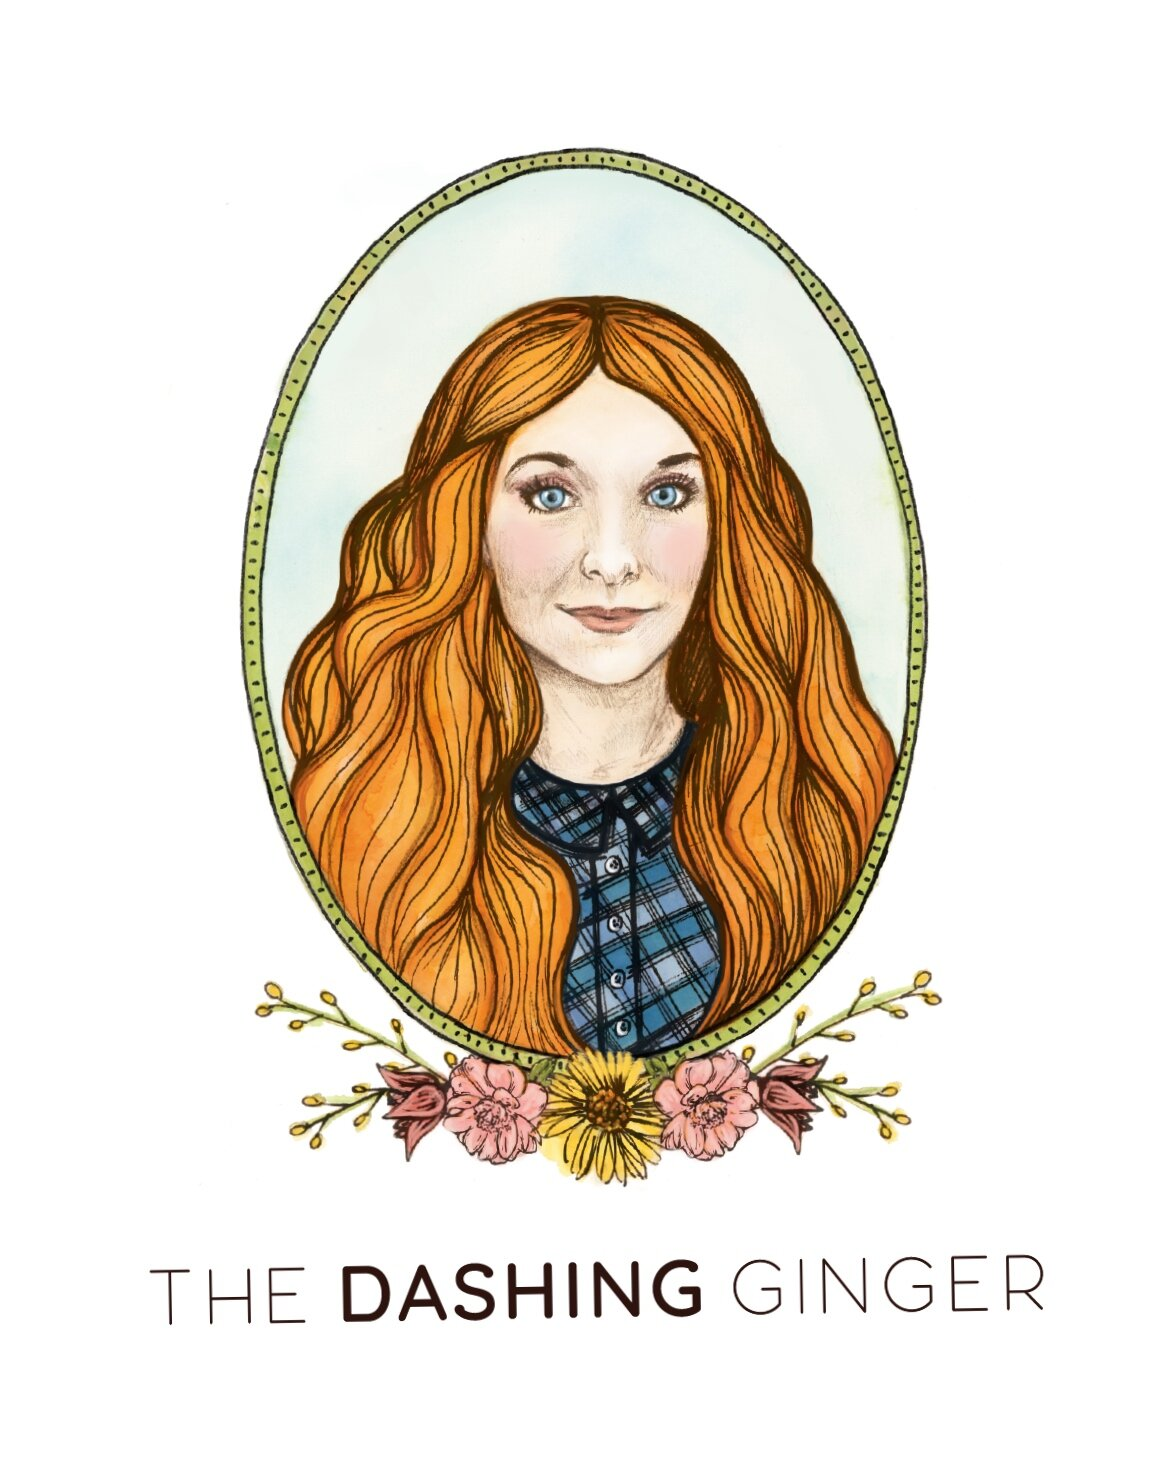 The Dashing Ginger